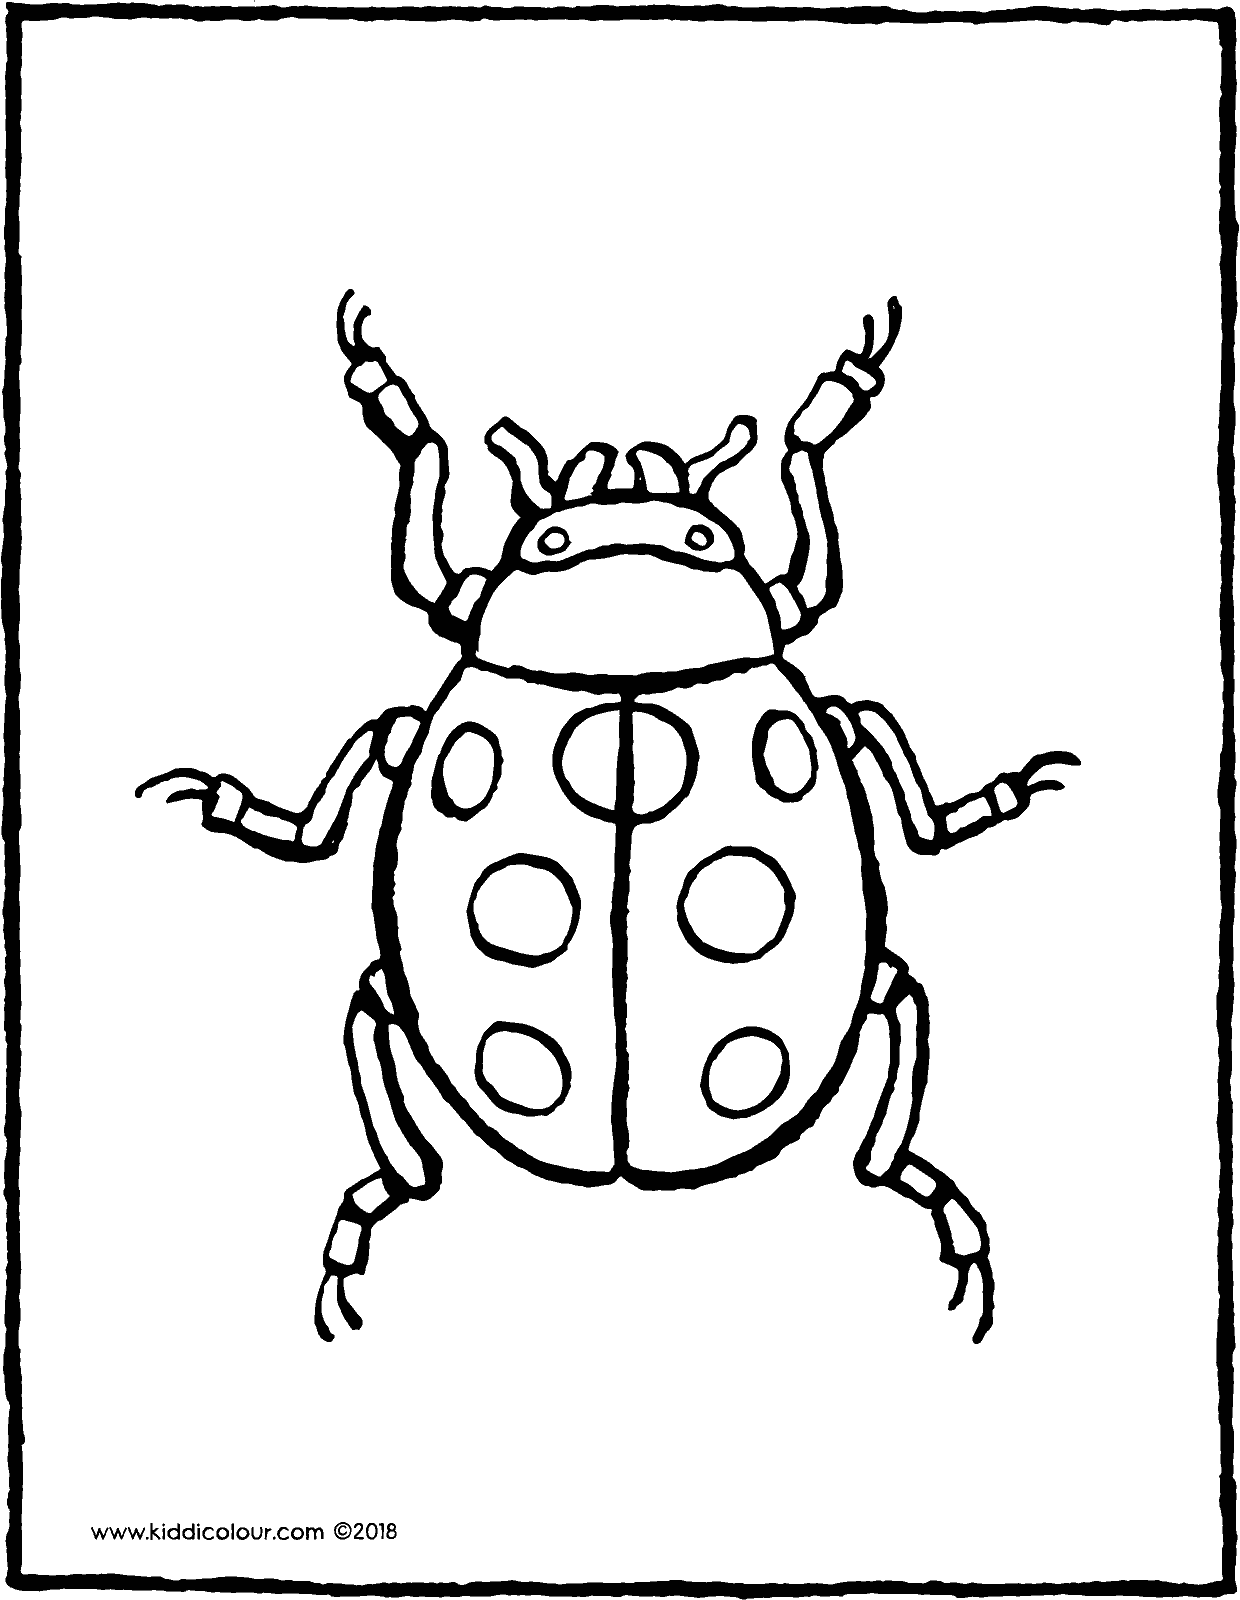 colouring ladybird ladybug coloring pages coloringrocks ladybird colouring